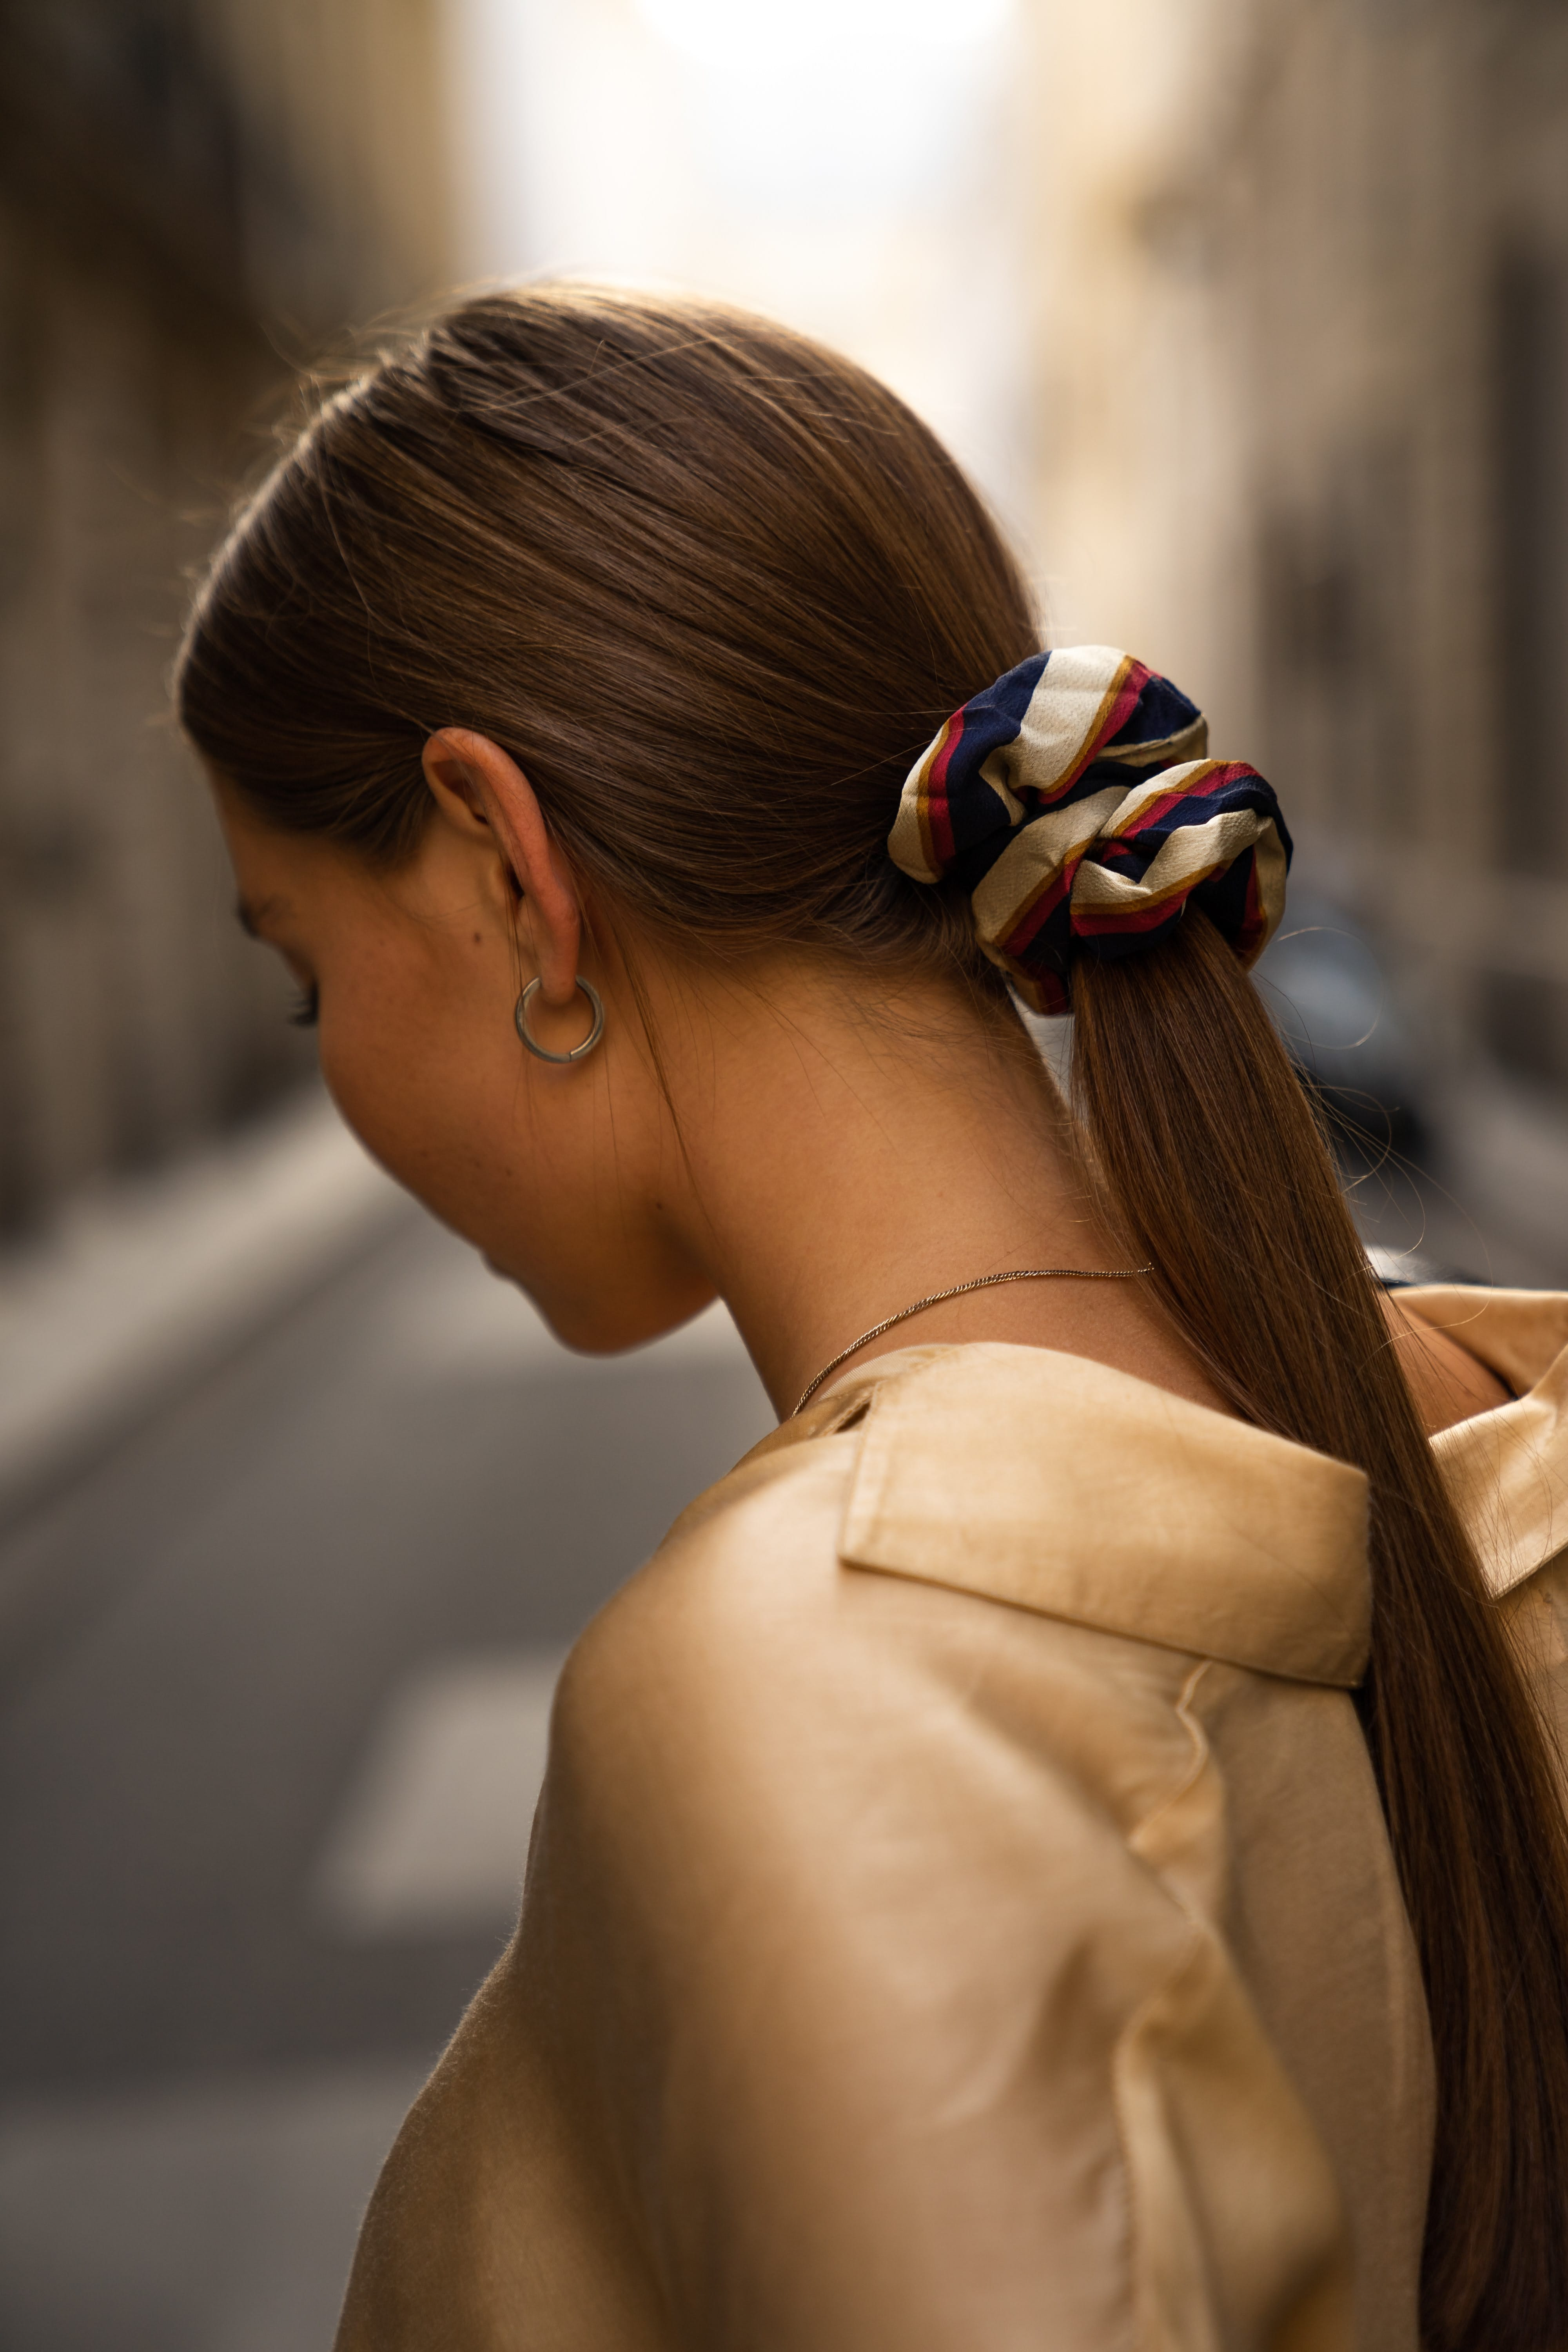 Girl with in a fancy outfit with a low ponytail.